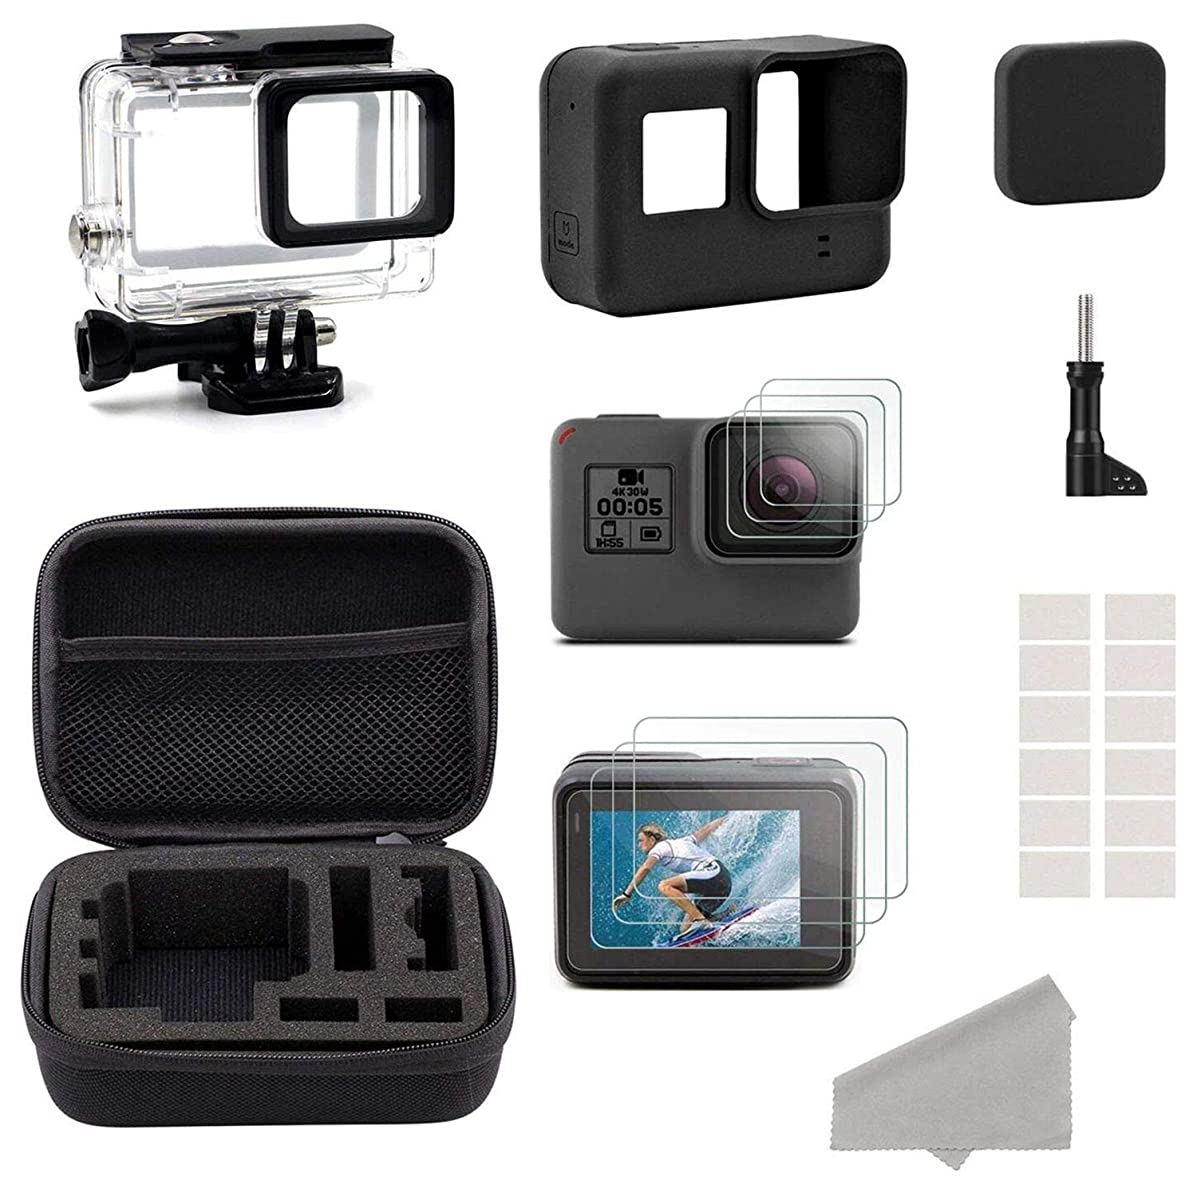 SODIAL Accessories for GoPro Hero HD (2018) /6/5 Black Starter Kit Travel Ca Small + Housing Ca + Screen Protector + Lens Cover + Silicone Protective Ca